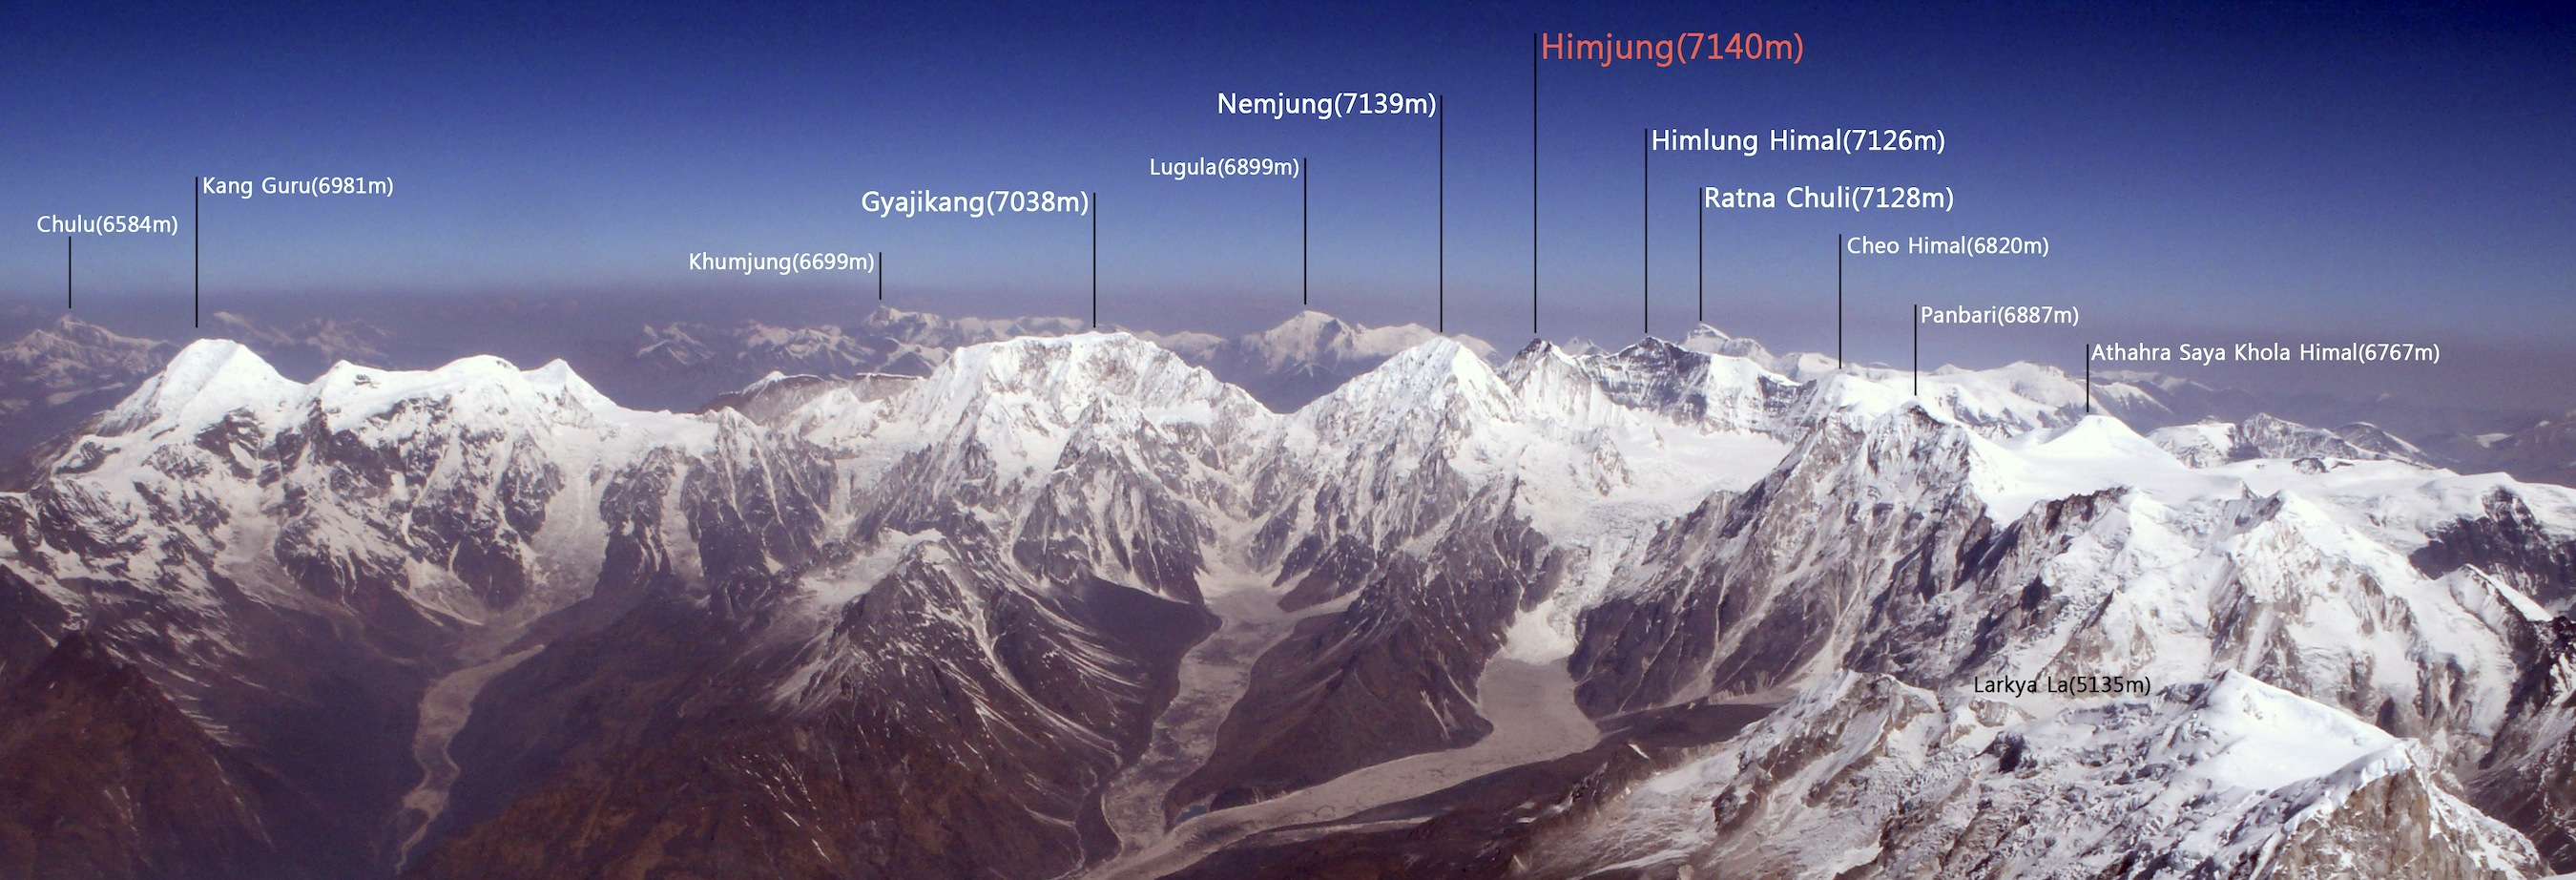 A splendid panorama of the Peri Himal, looking northwest from the summit of Manaslu. The southwest face of Himjung, climbed by the Koreans in 2012, is out of view to the left. The official heights of certain peaks, as shown on the HMG–Finn map of the area, are: Khumjung (Khamjung), 6,759m; Gyajikang, 7,074m; Nemjung, 7,140m; Himjung, 7,092m; Ratna Chuli, 7,035m; Panbari, 6,905m.